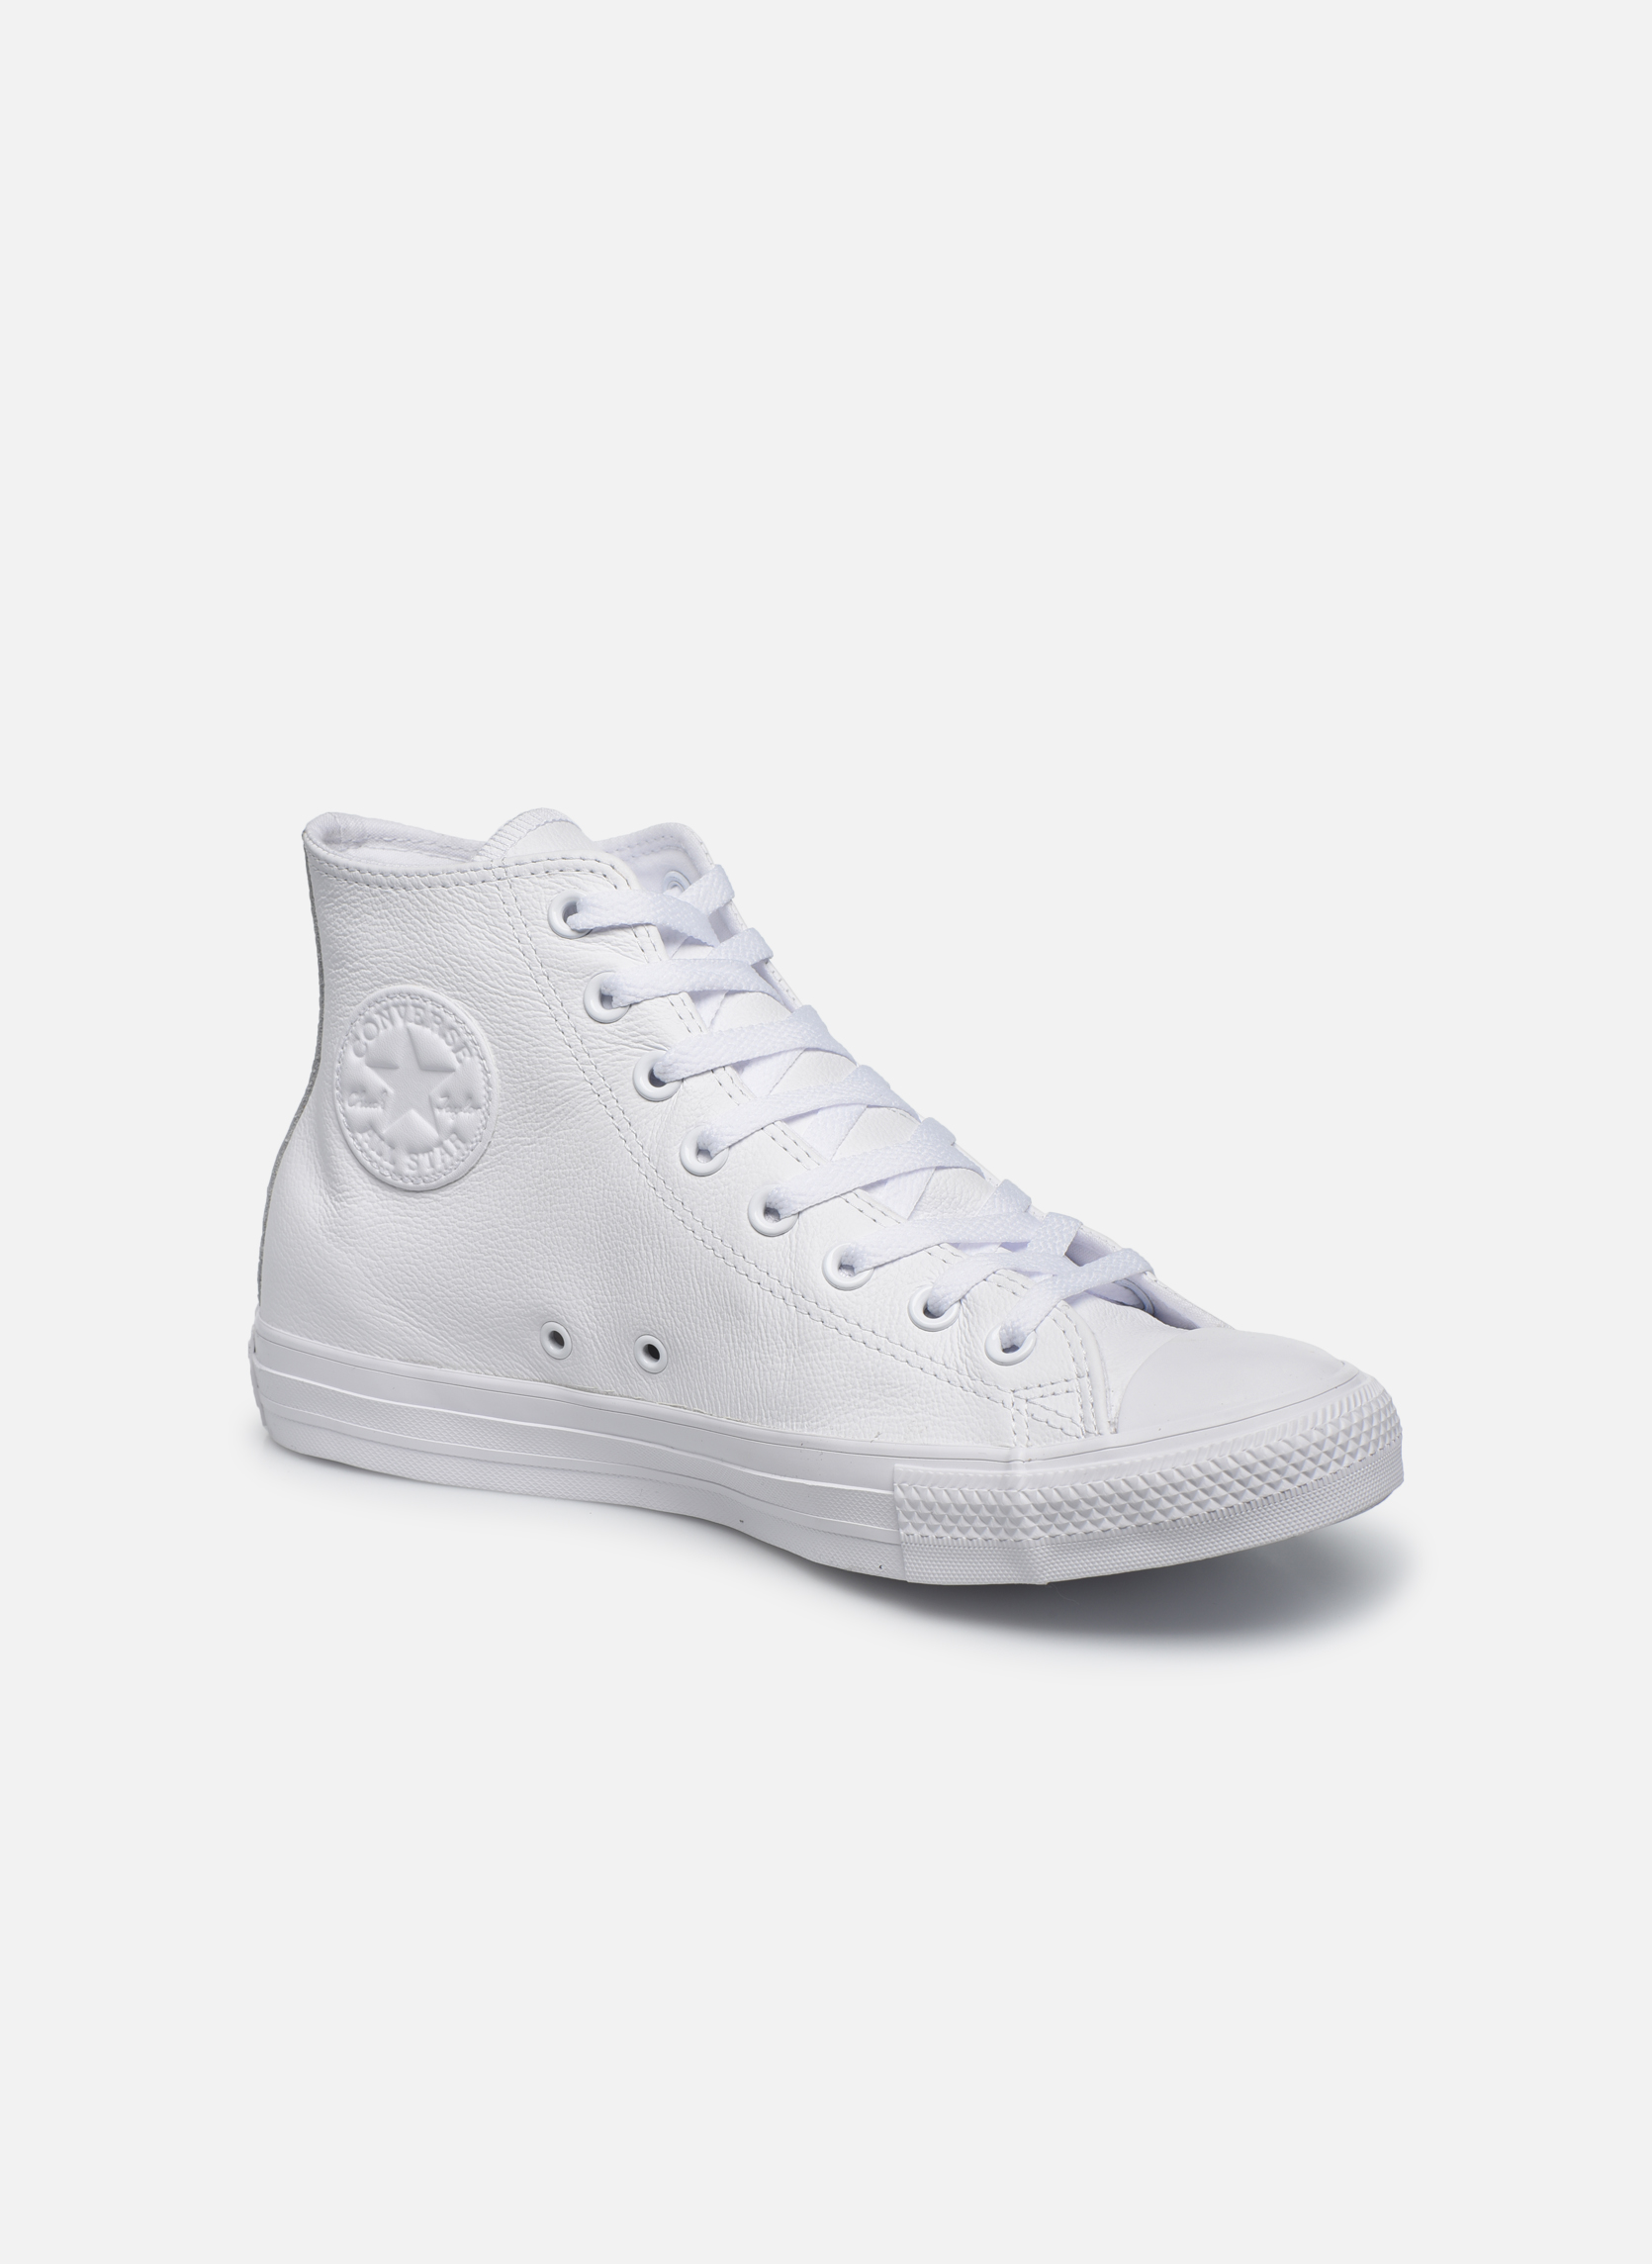 Converse Chuck Taylor All Star Mono Leather Hi W